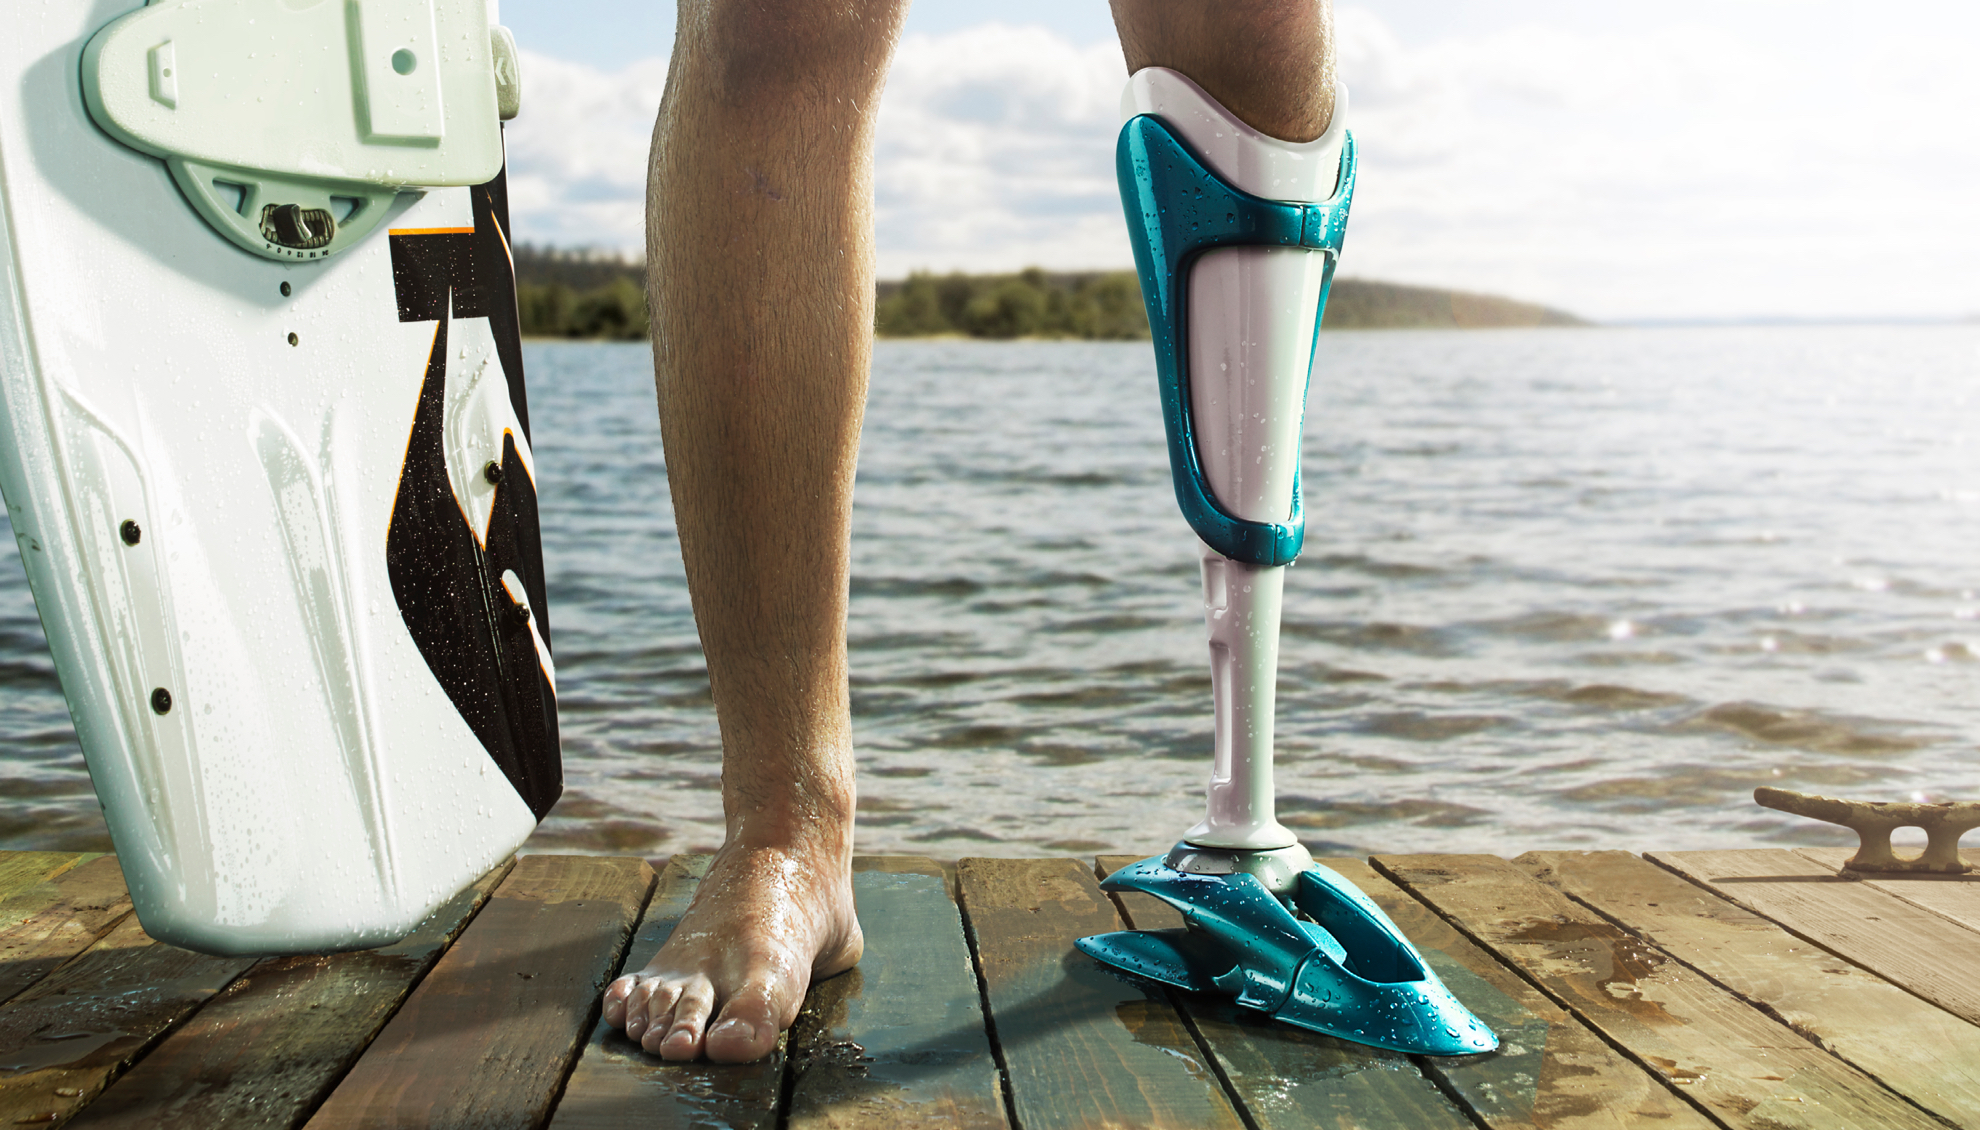 A prosthetic leg for amputee wakeboarder